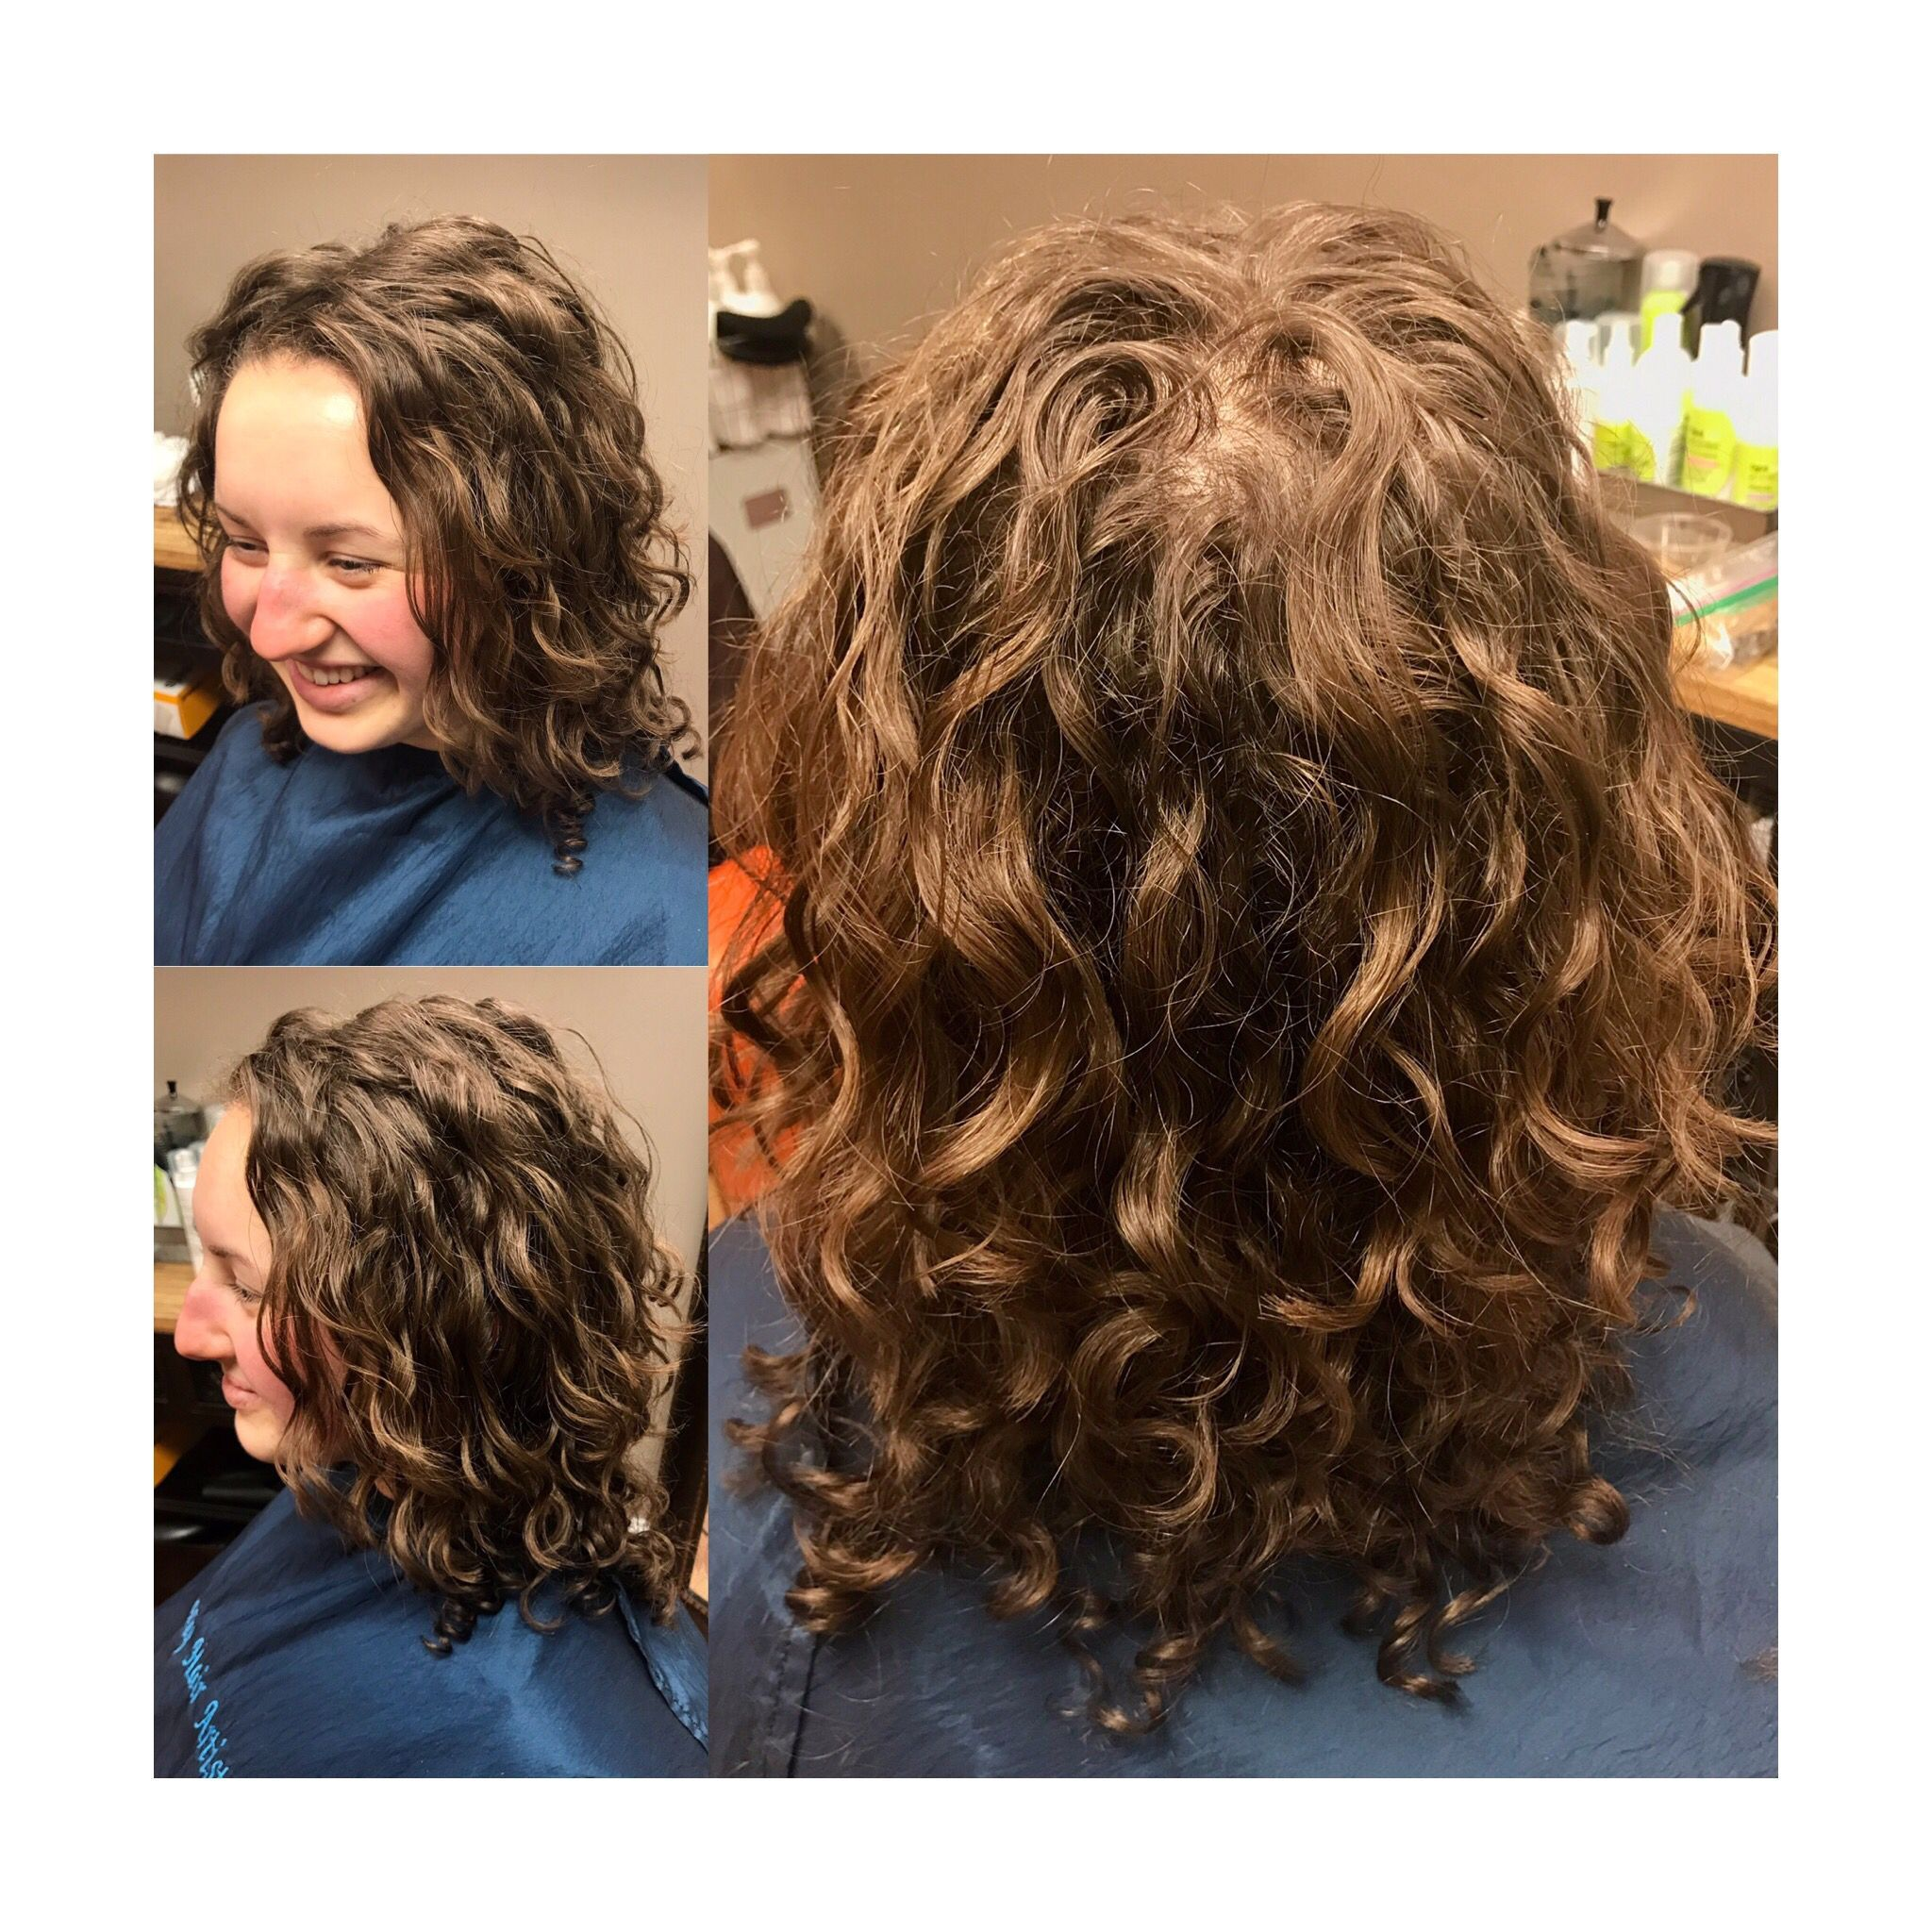 Pin On Hair Art By Andrea Bonawitz Color Cut Natural Curls